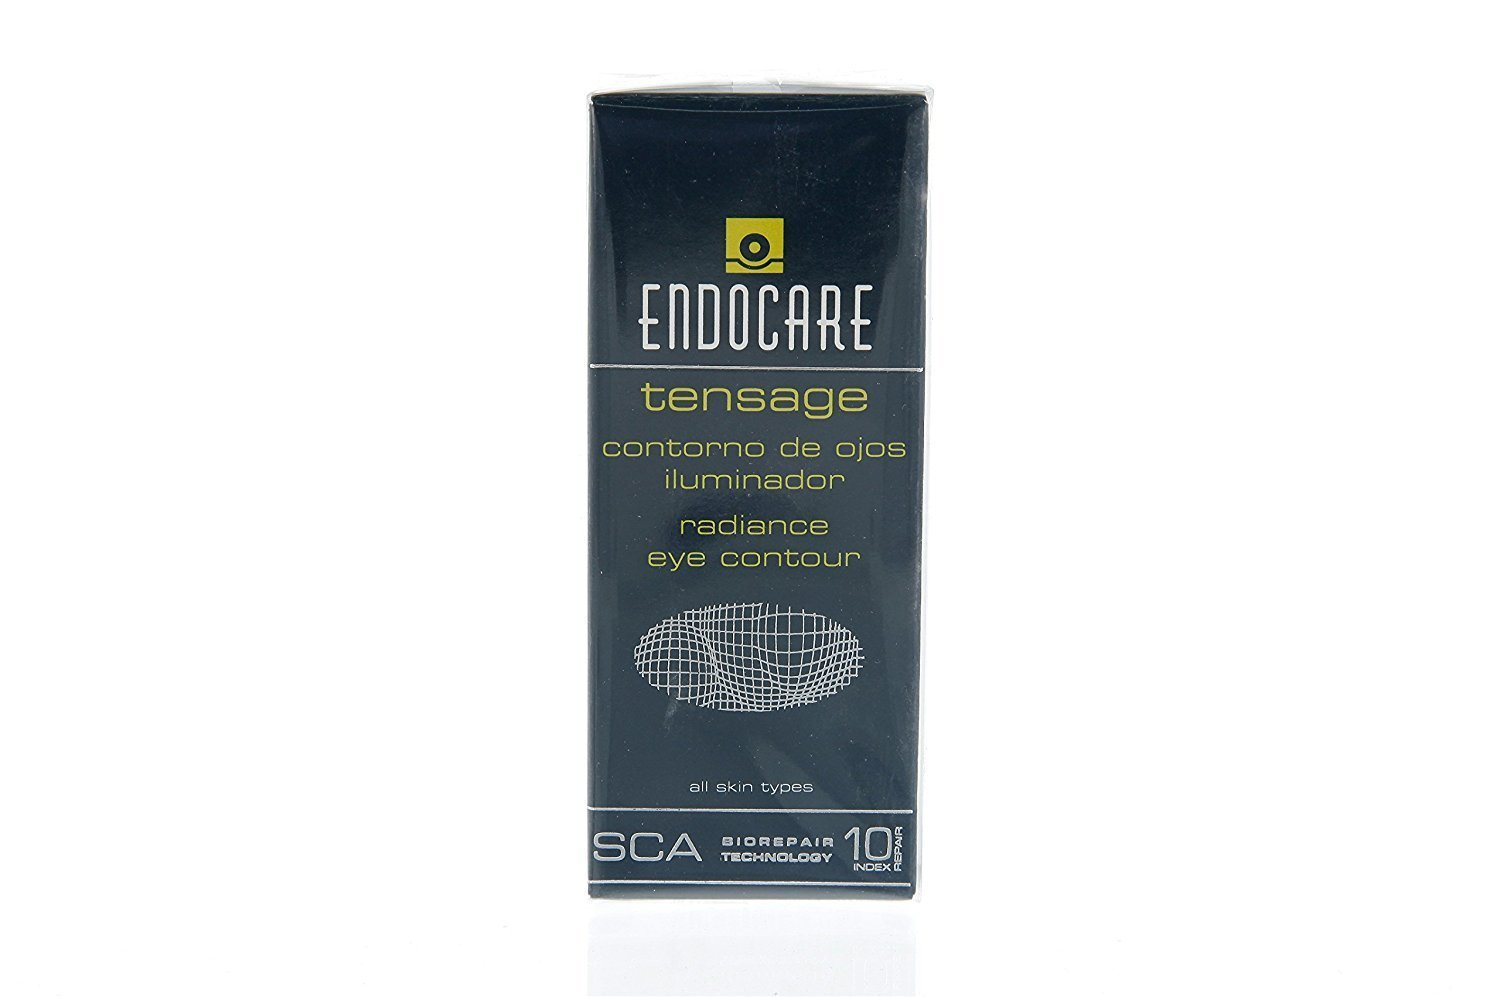 Endocare Tensage Brighter Eye Contour 15ml CSTLL B0050NHM6W